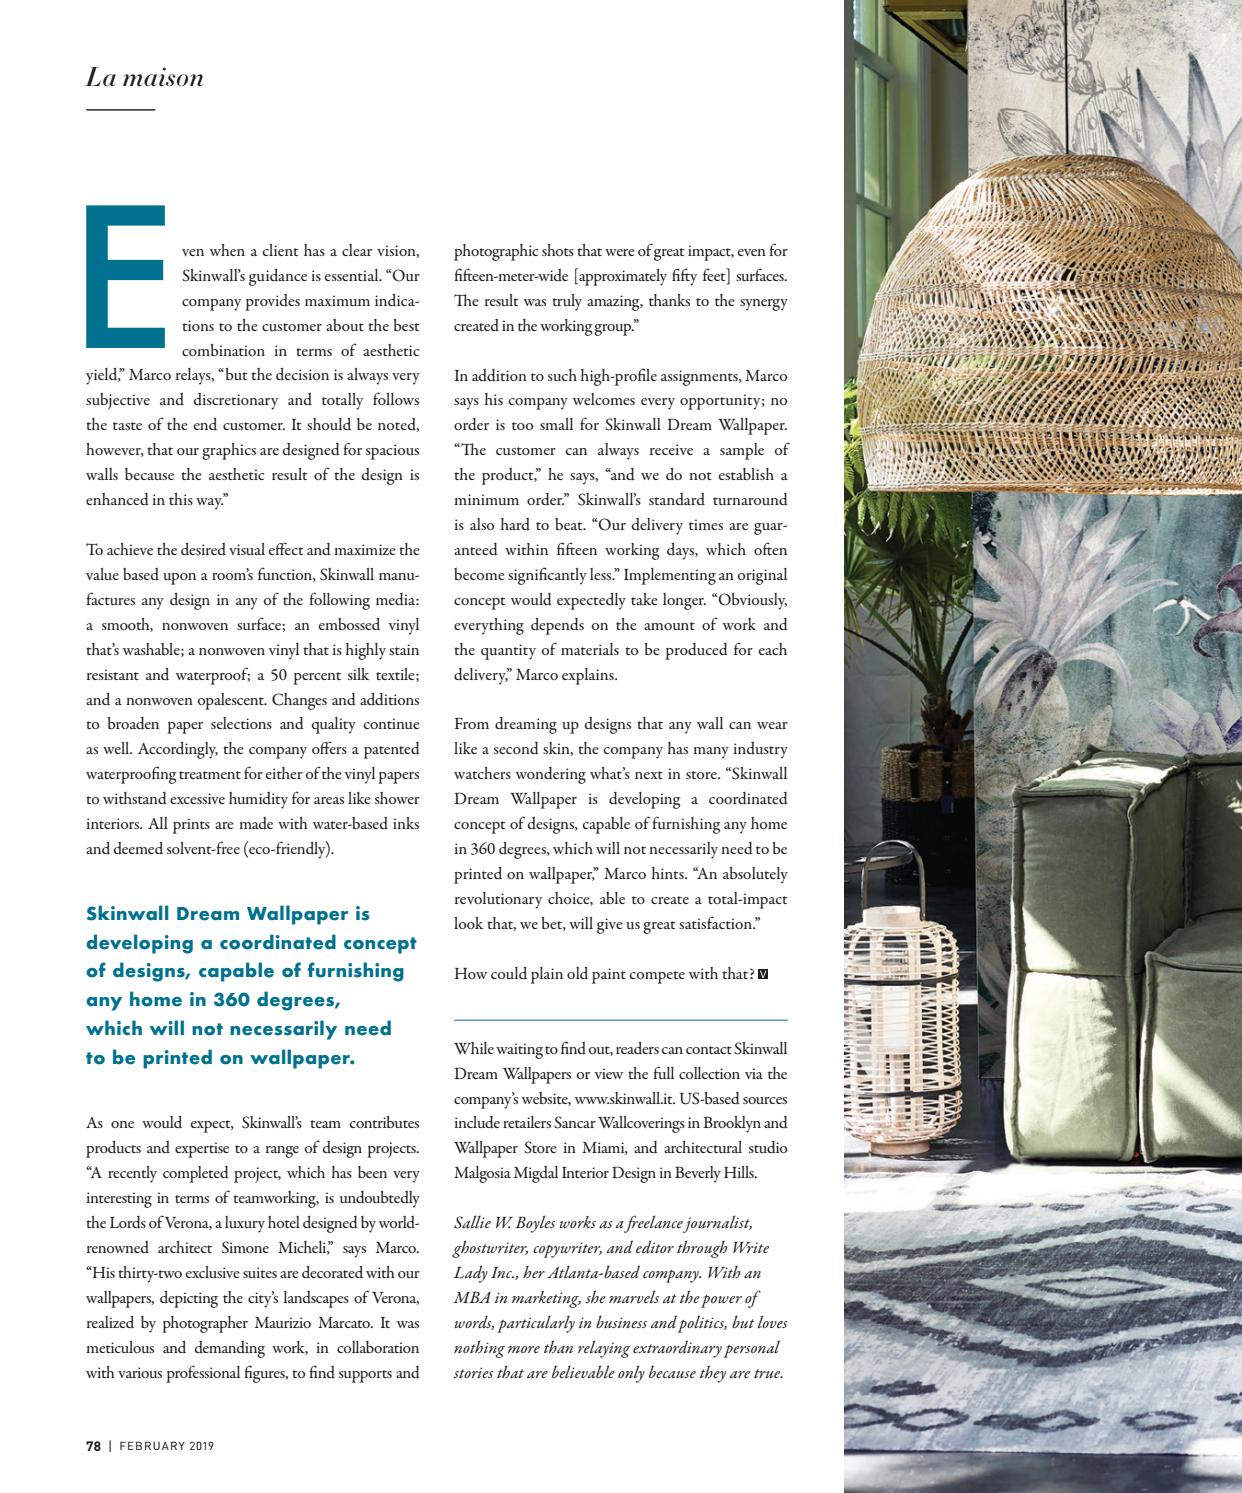 Elongate Pointed Ovals Beige Cream Gold Wallpaper Source · VIE Magazine February 2019 by The Idea Boutique issuu